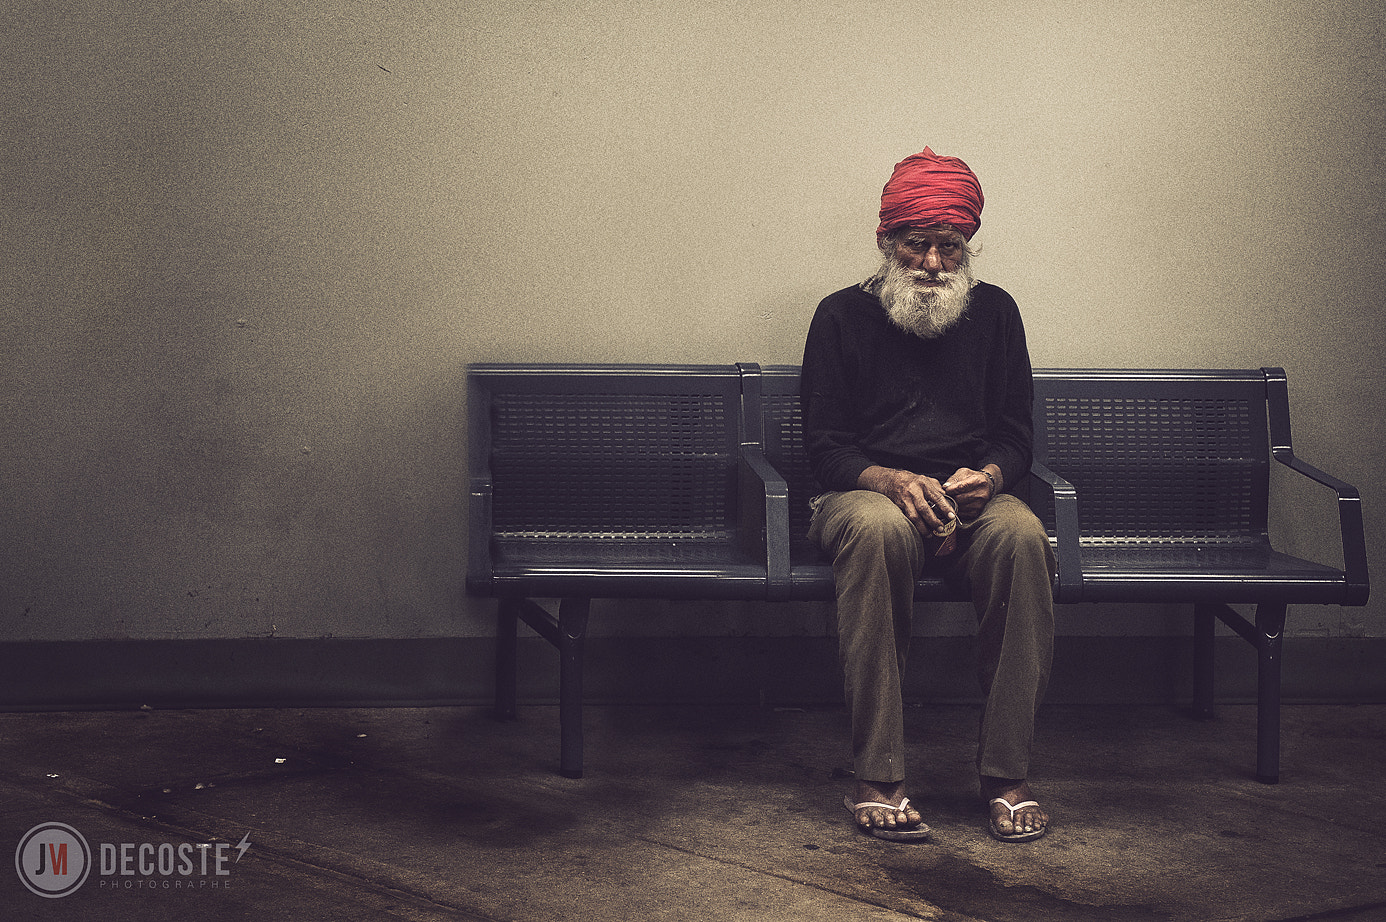 Photograph Toronto - Old Guy  by Jean-Michel Decoste on 500px